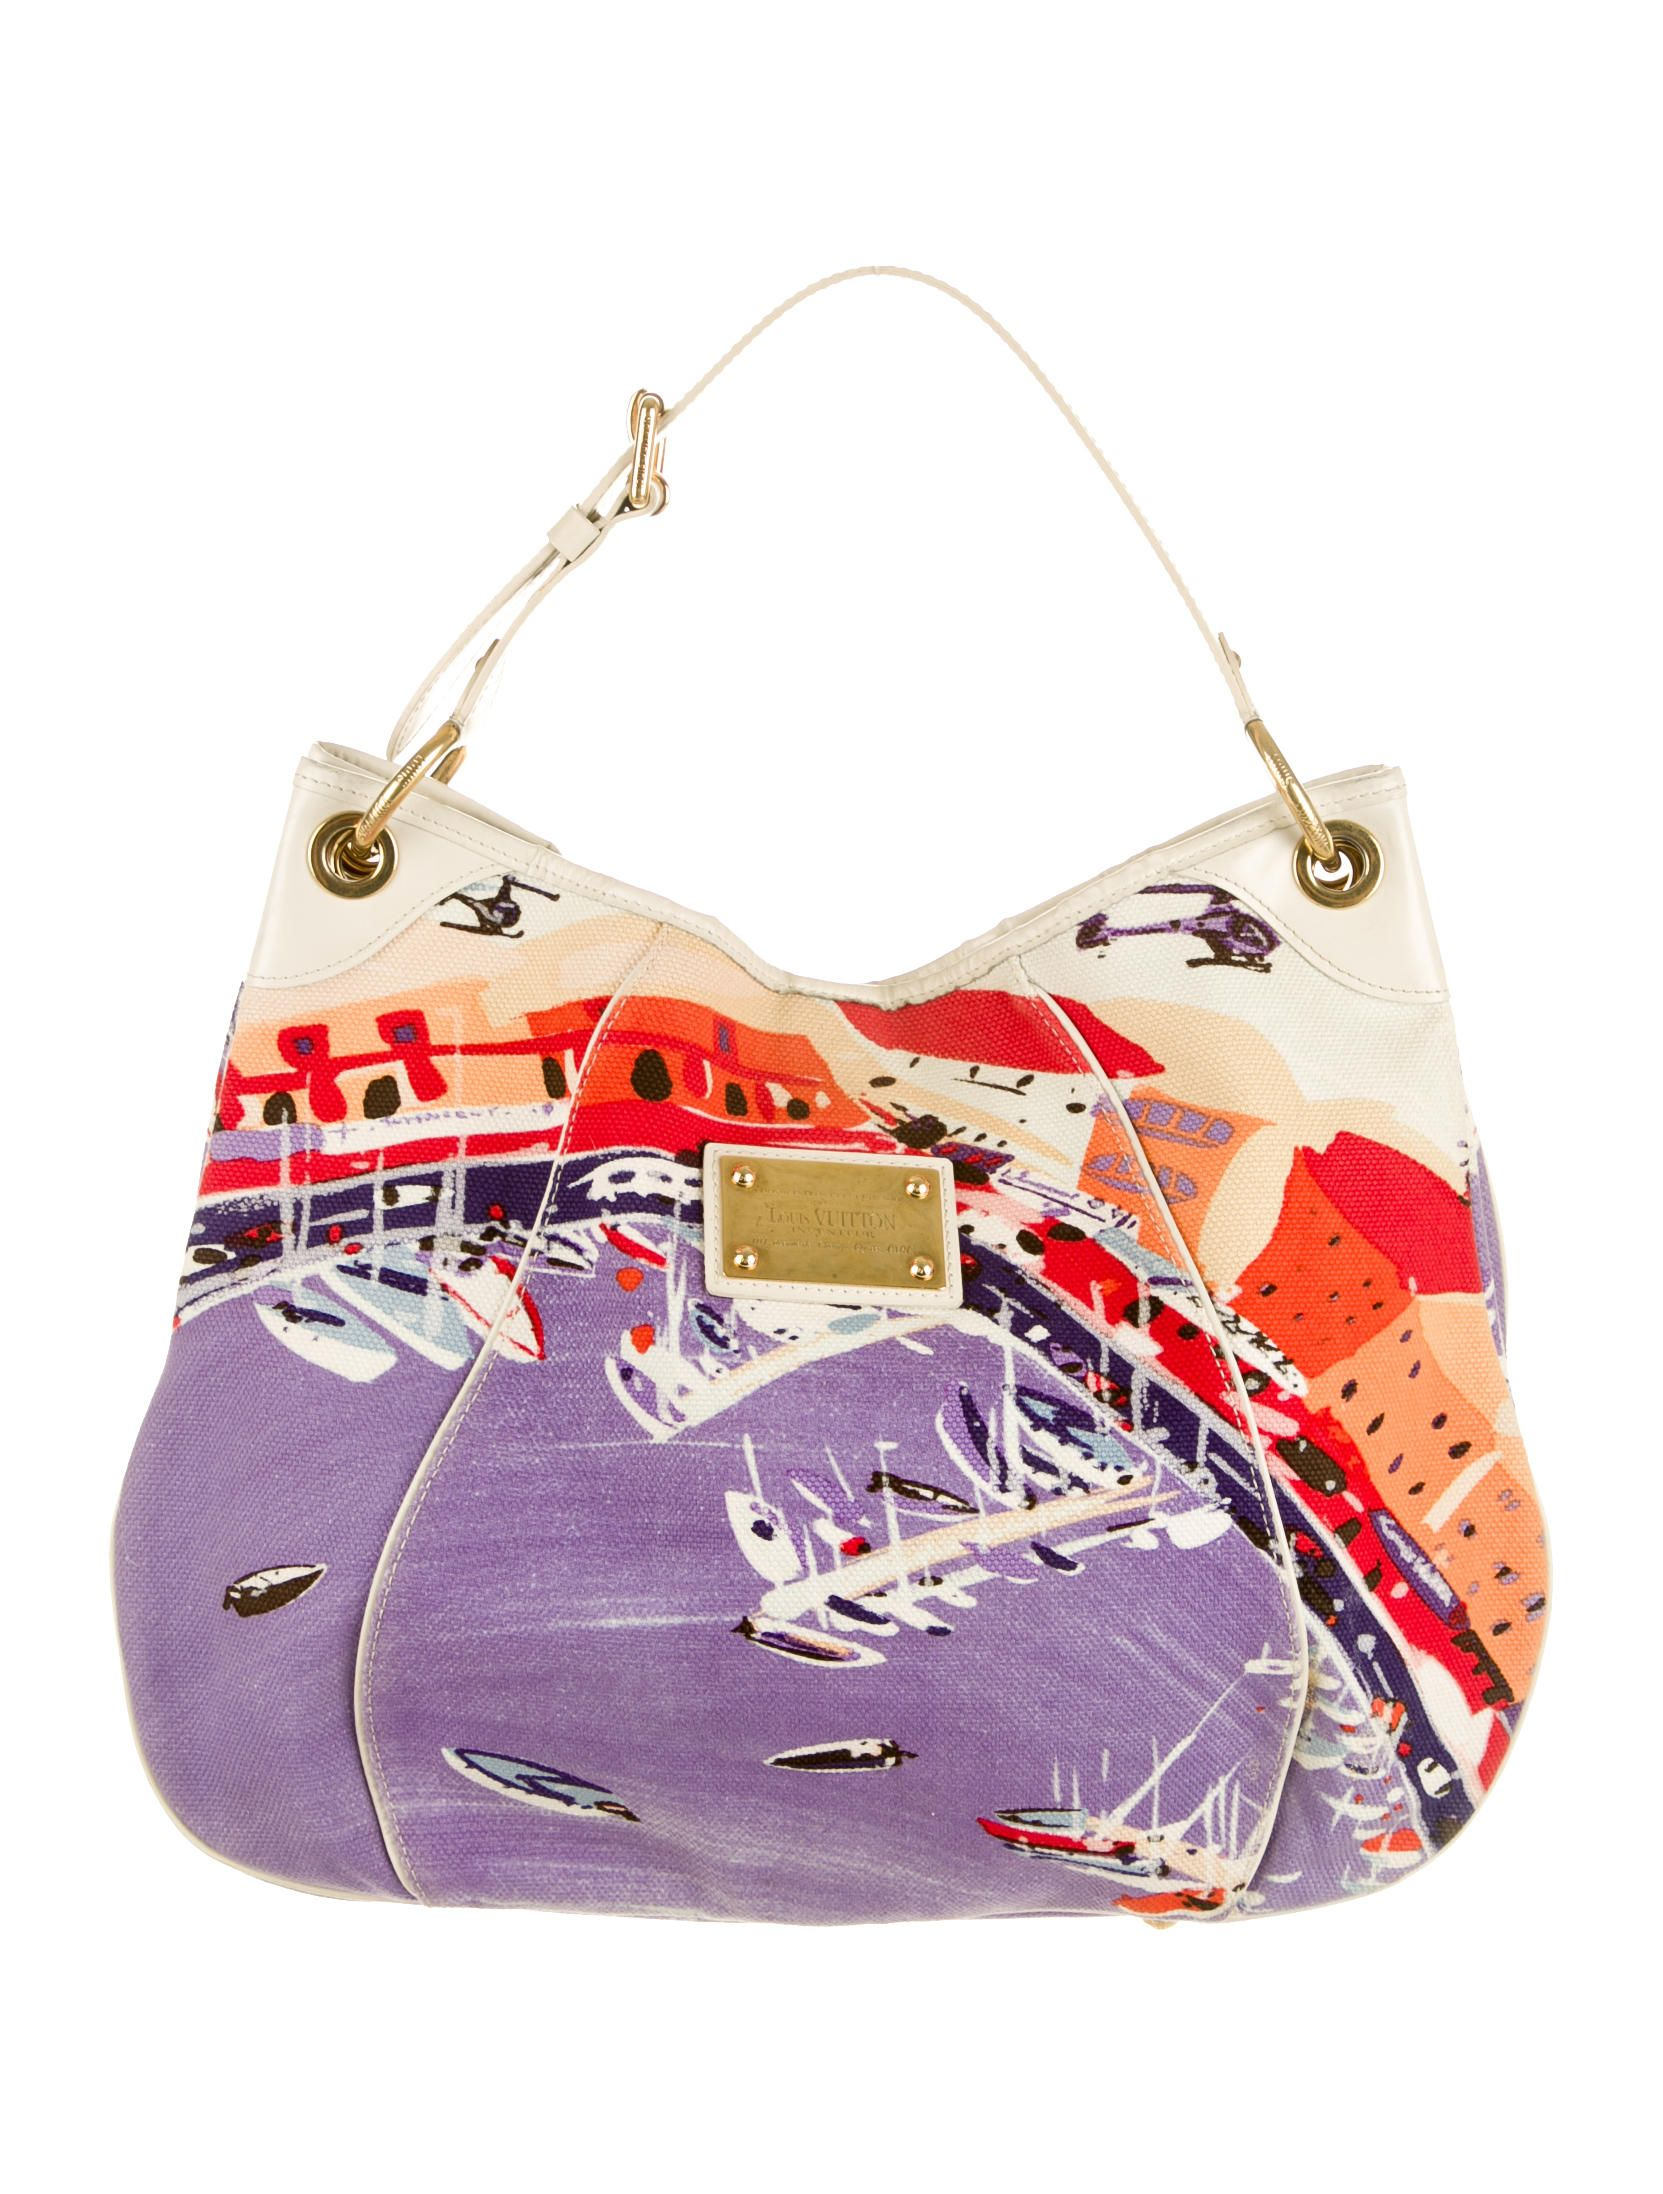 a8753bee1880 Ivory and multicolor Louis Vuitton Galliera Riviera GM tote with printed  boat dock graphic throughout